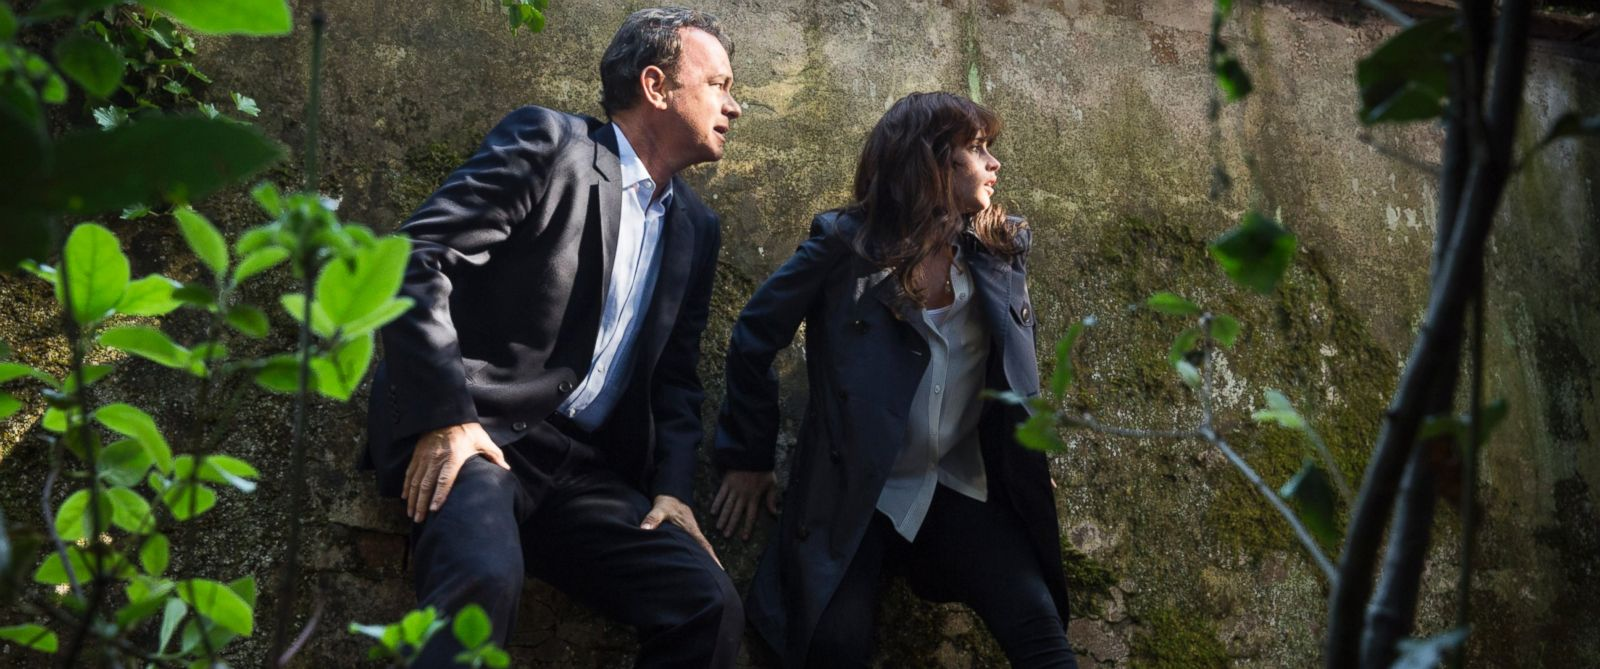 tom hanks s latest is neither compelling nor believable   abc news